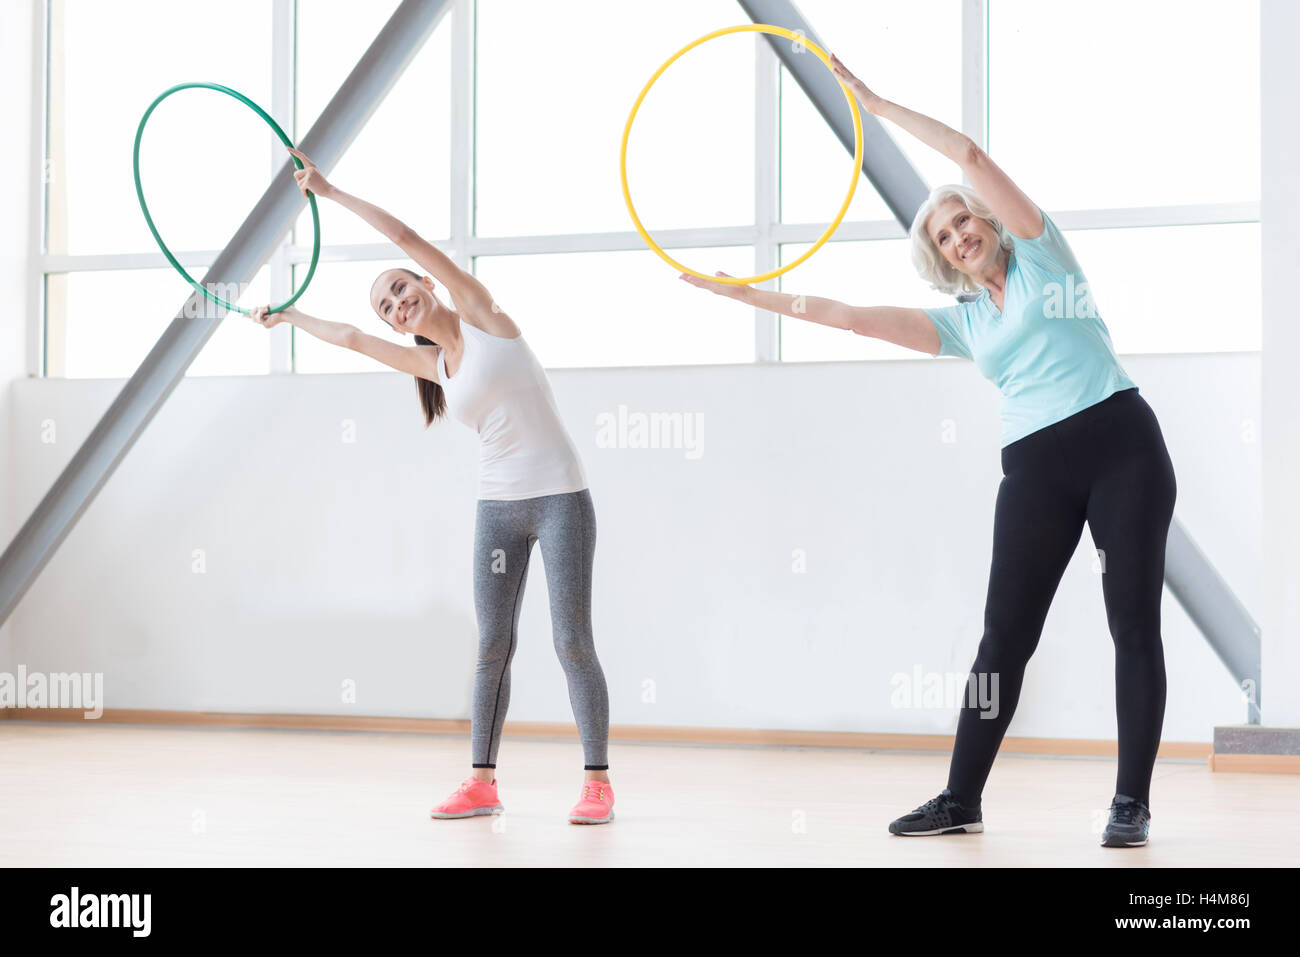 Active sporty women working out using sports equipment - Stock Image